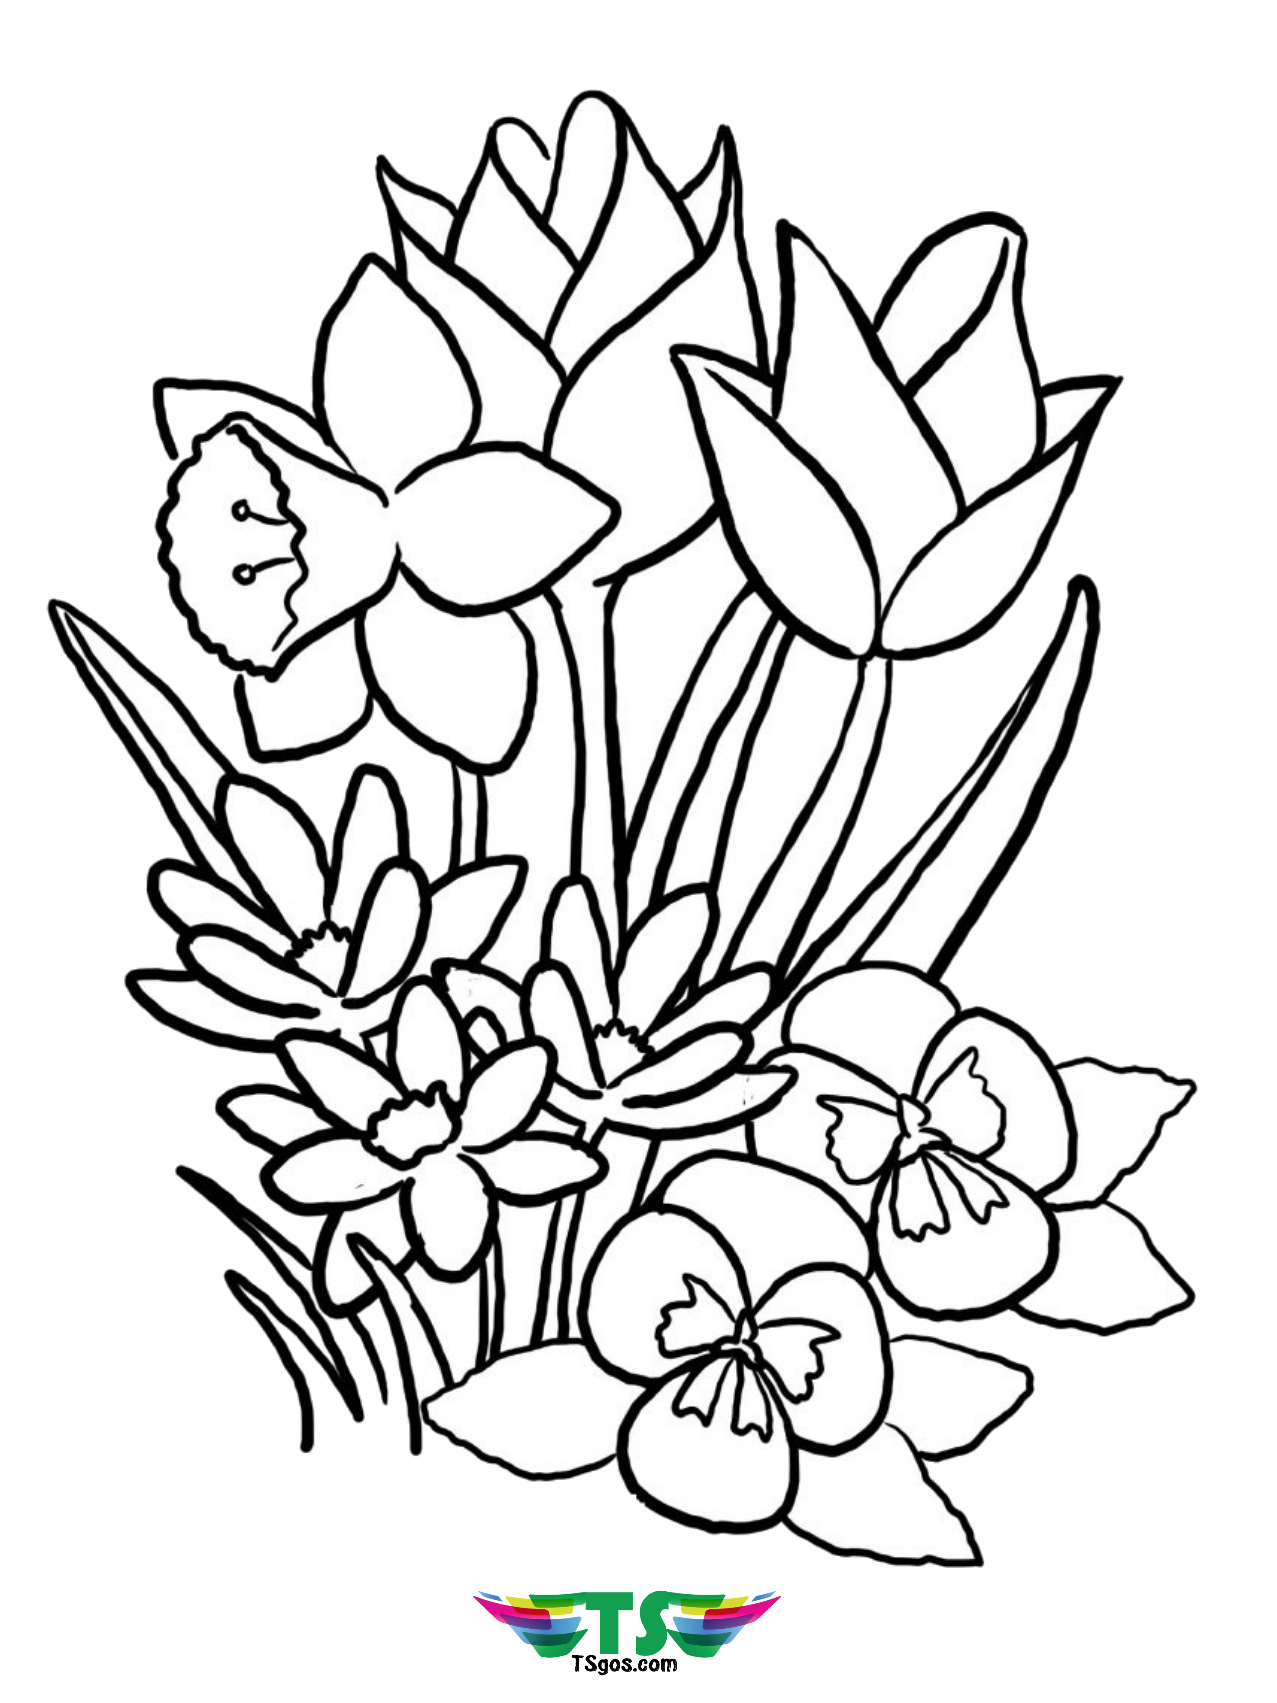 colouring flowers pictures free printable flower coloring pages for kids best flowers pictures colouring